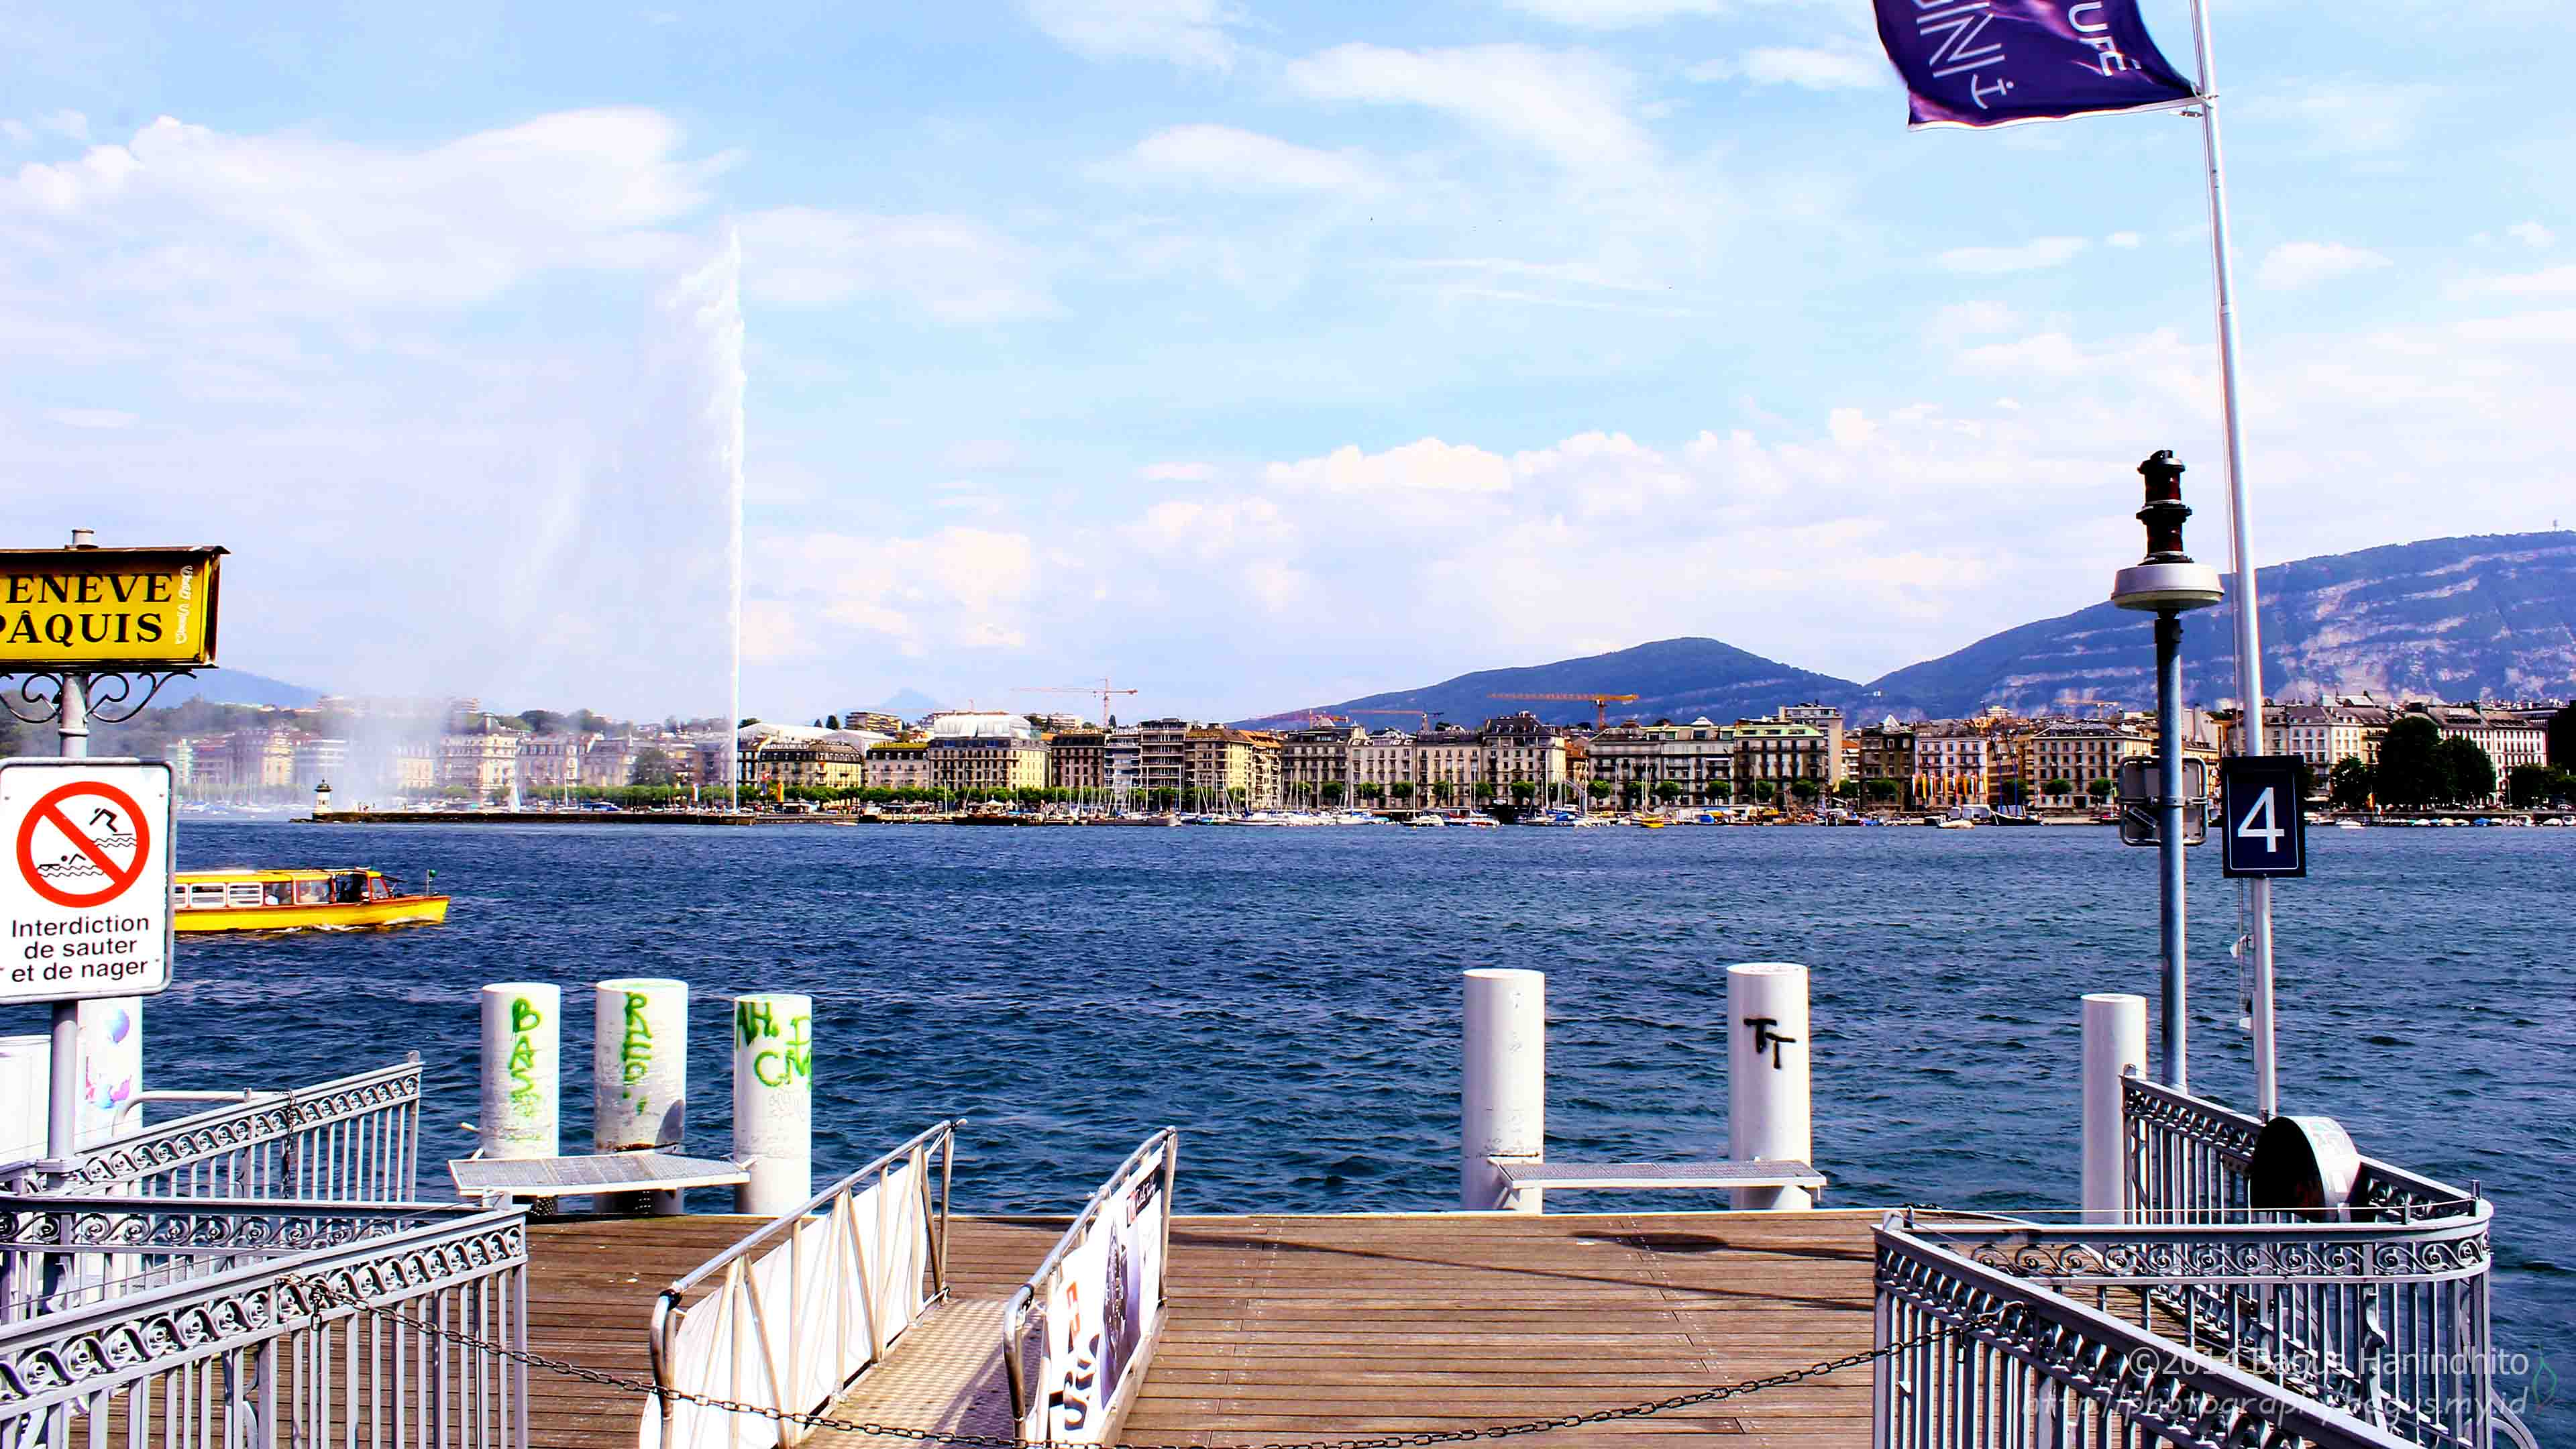 Lake Geneva with its Water Jet (Jet d'Eau). You can relax yourself in the middle of the lake by riding a ship.